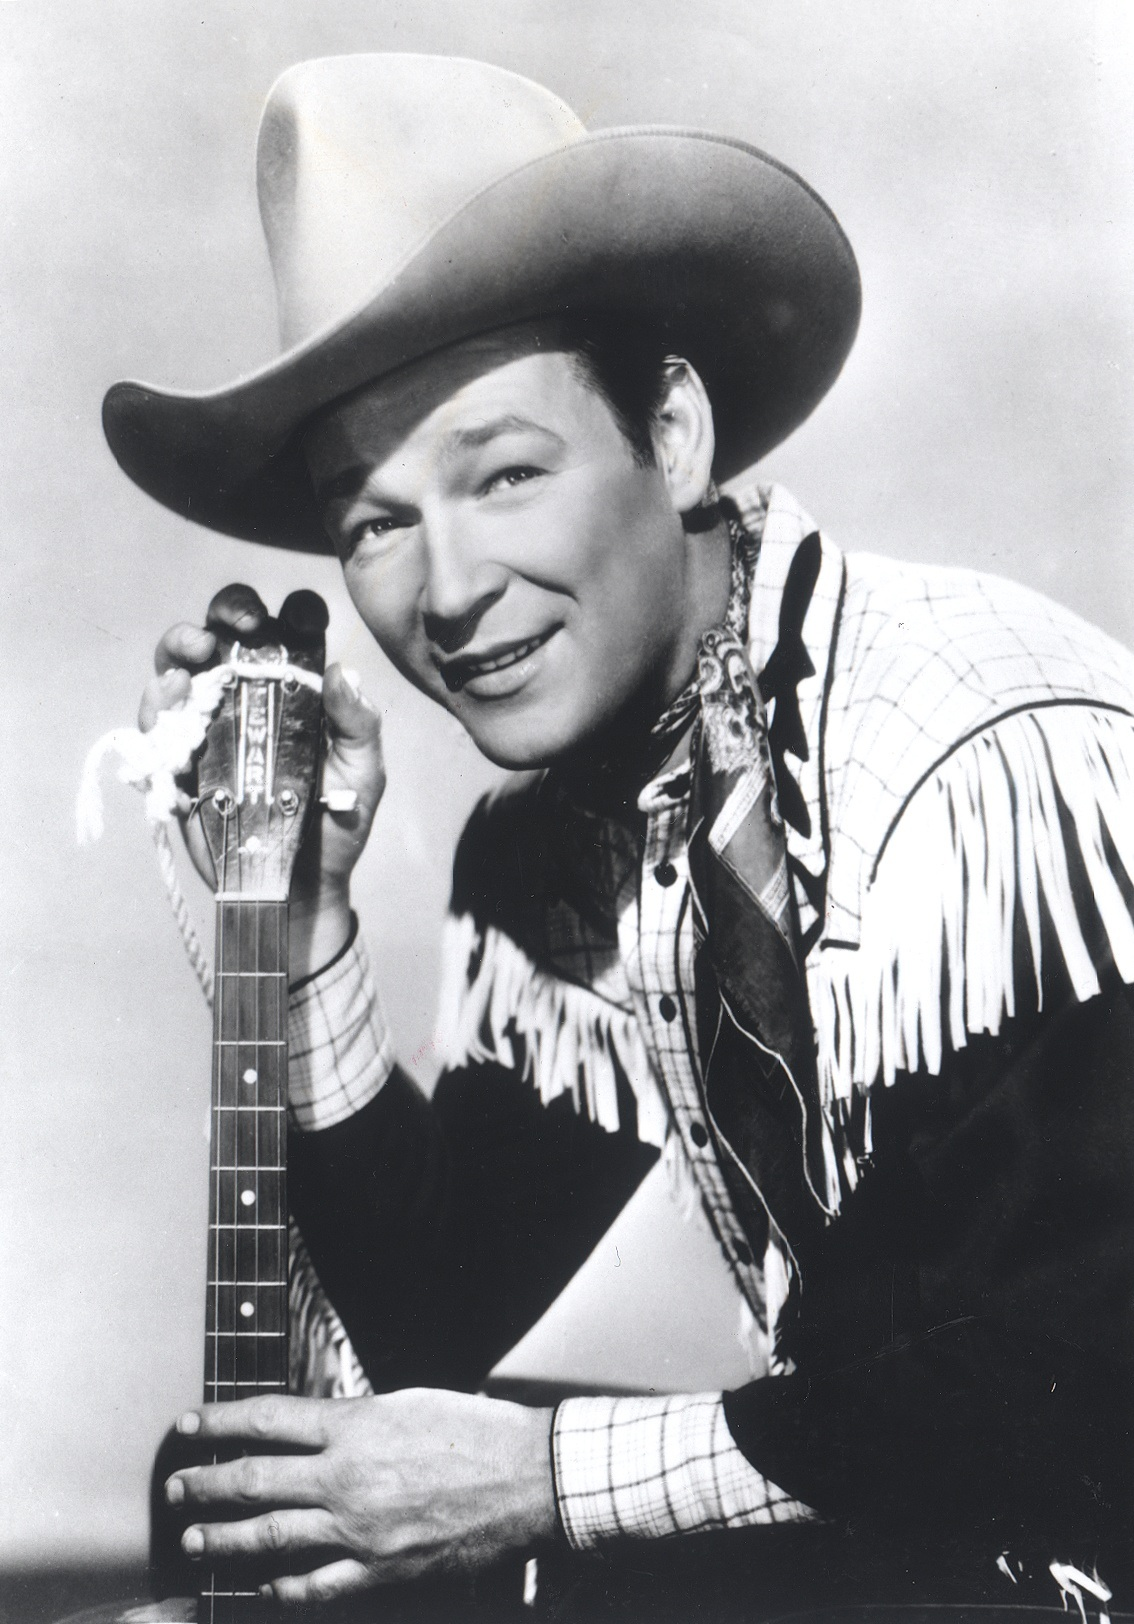 roy rogers images roy rogers hd wallpaper and background photos 37154001 roy rogers images roy rogers hd wallpaper and background photos 37154001